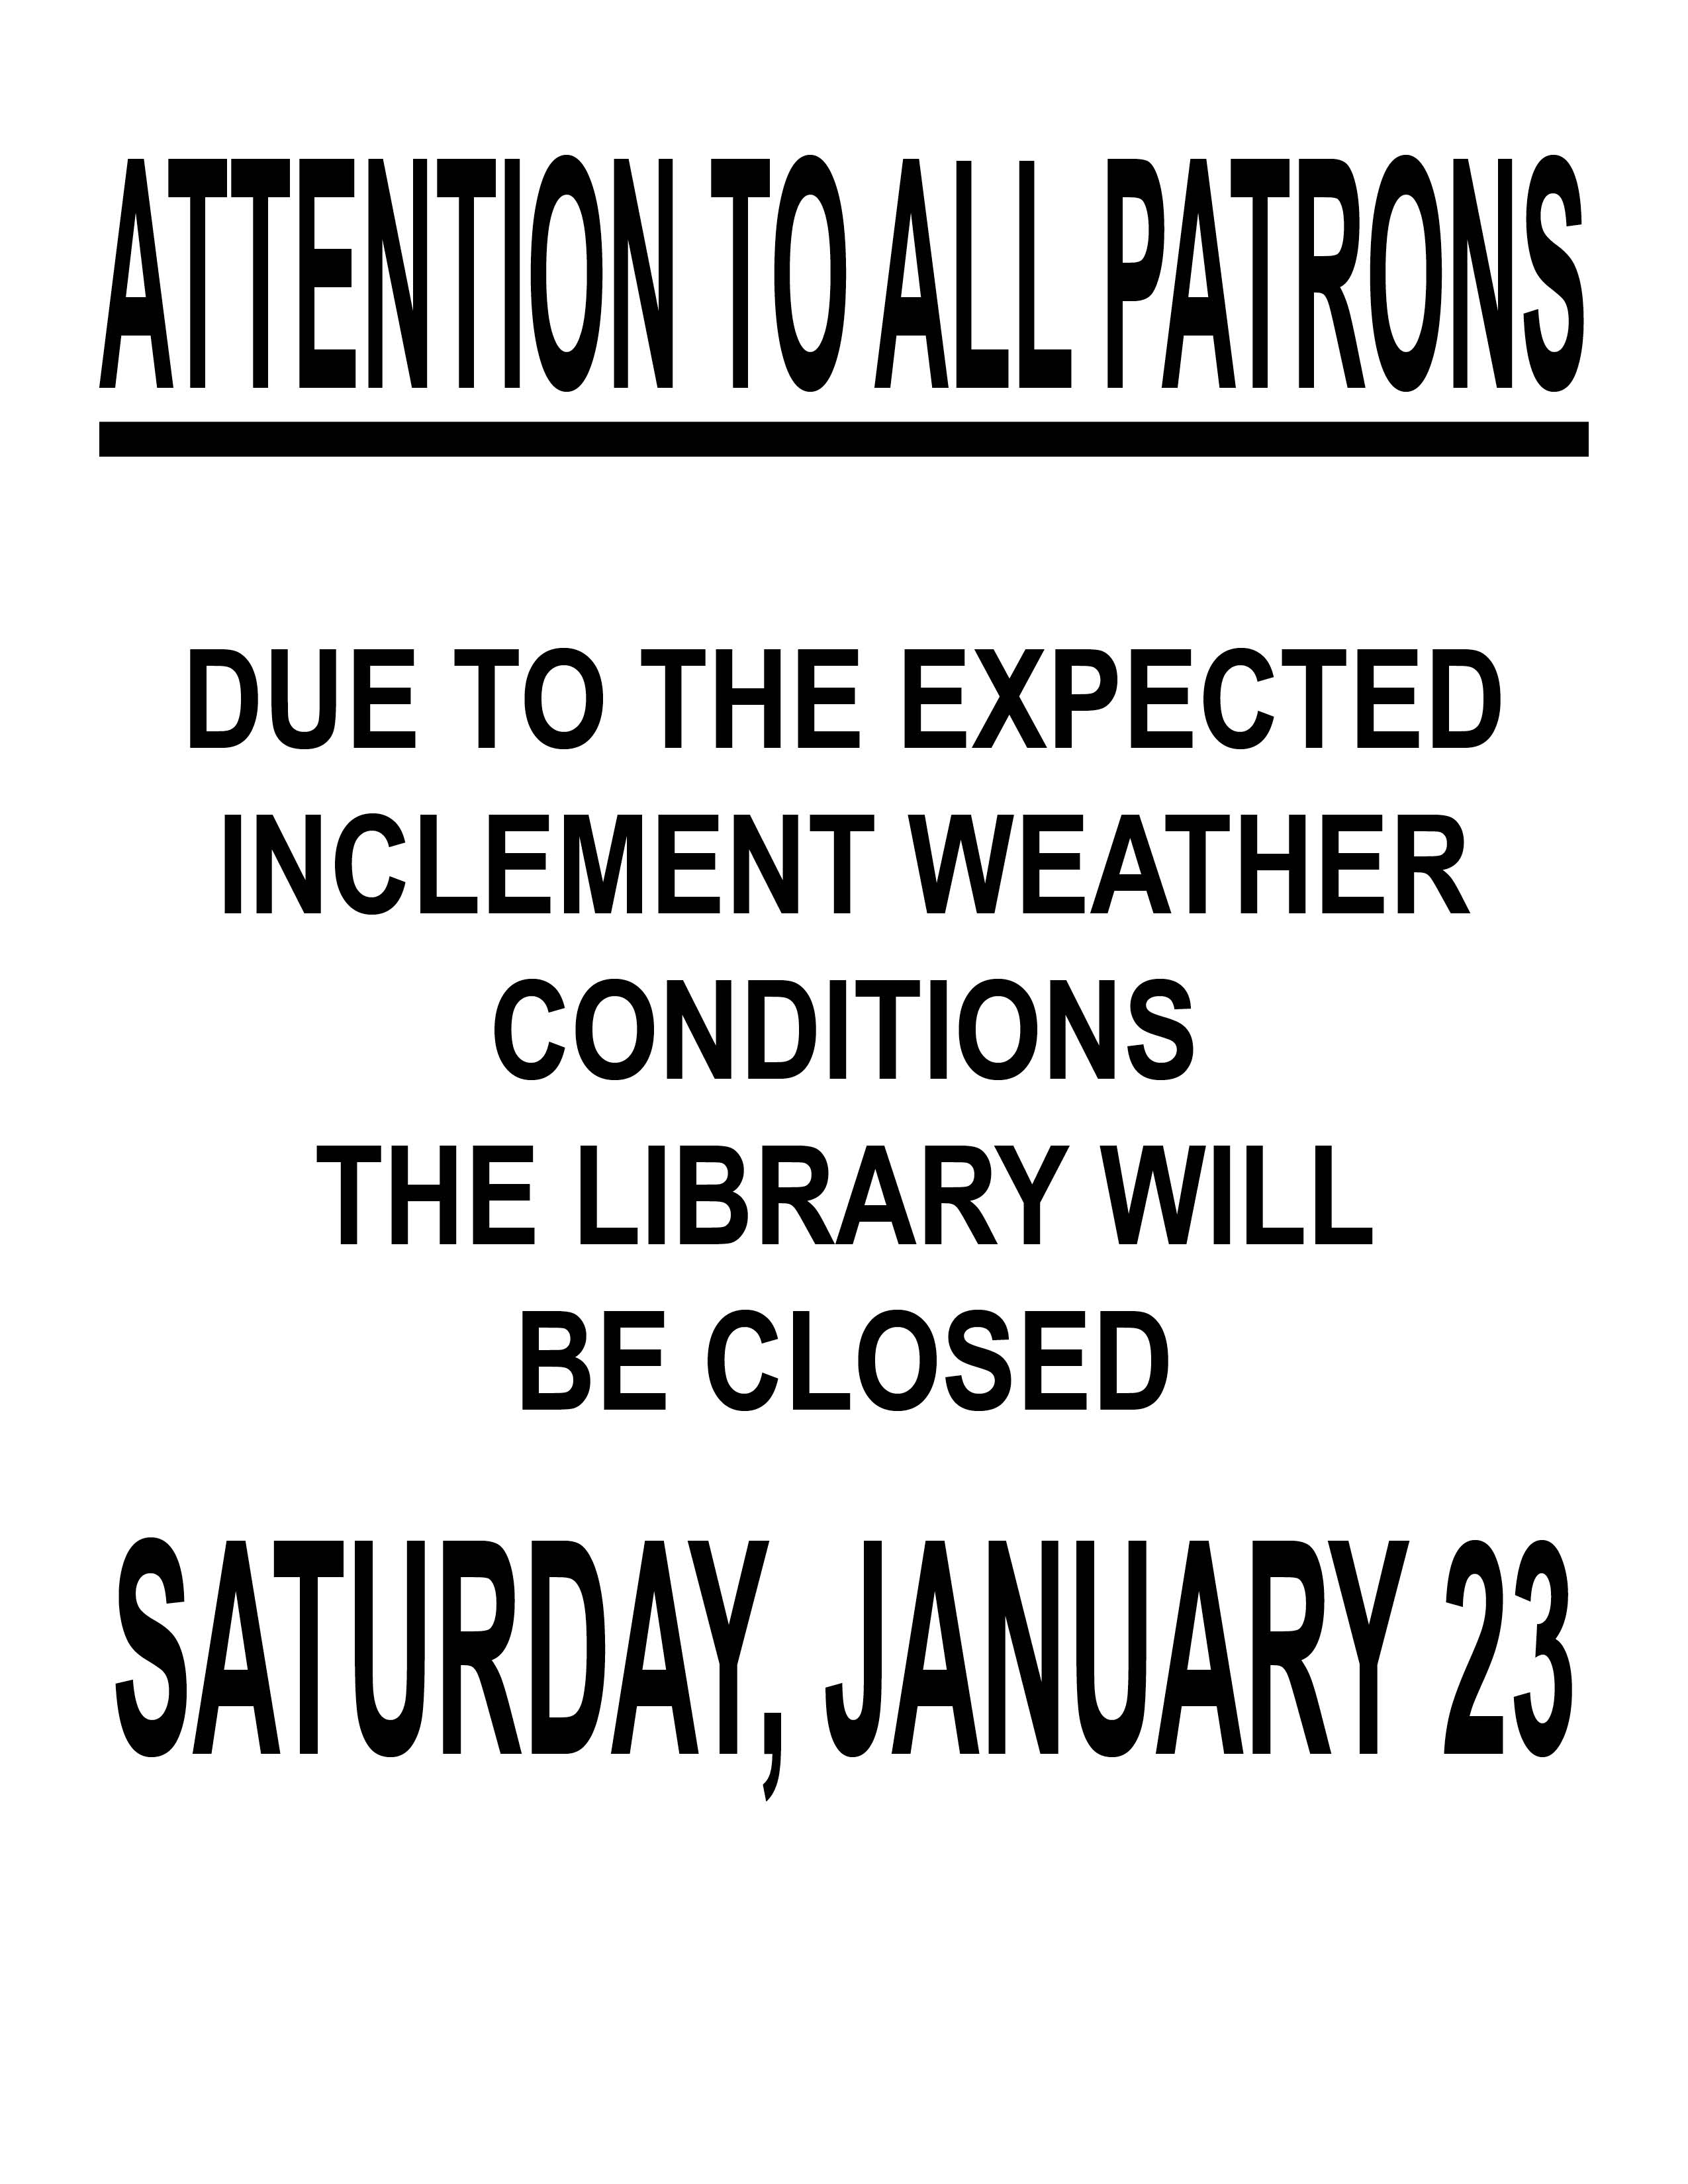 INCLEMENT WEATHER FLYER